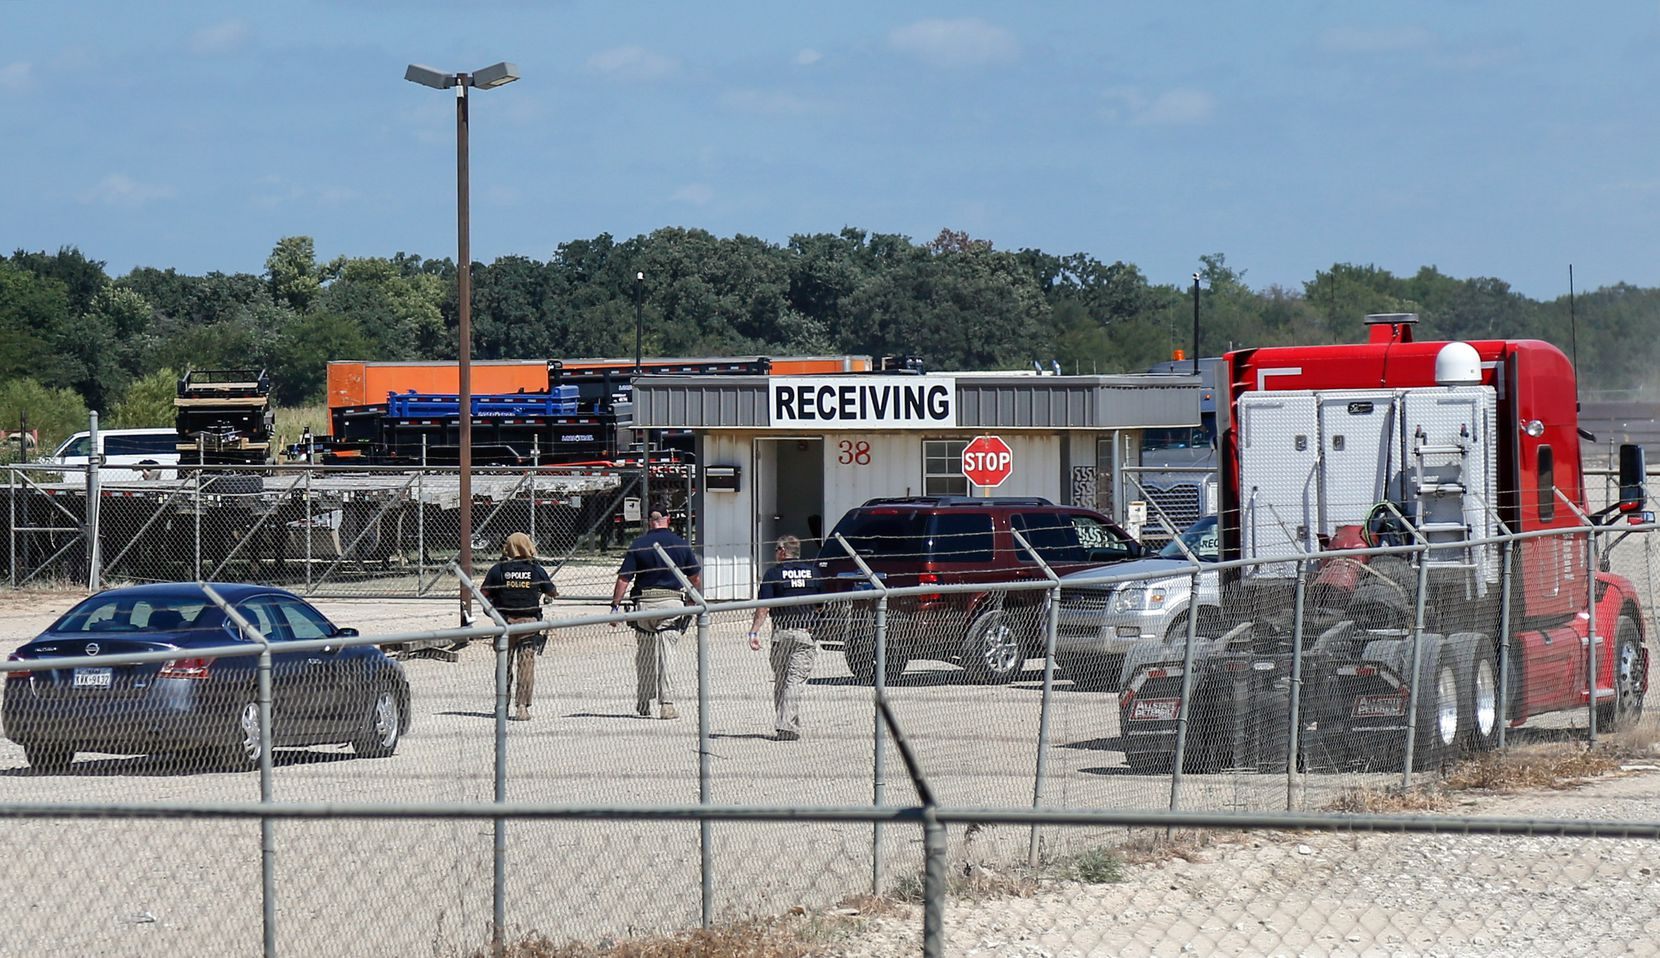 U.S. Immigration and Customs Enforcement agents are seen at the receiving gates of Load Trail, a Sumner-based business agents raided for undocumented workers in 2018. (Lora Arnold/Paris News)